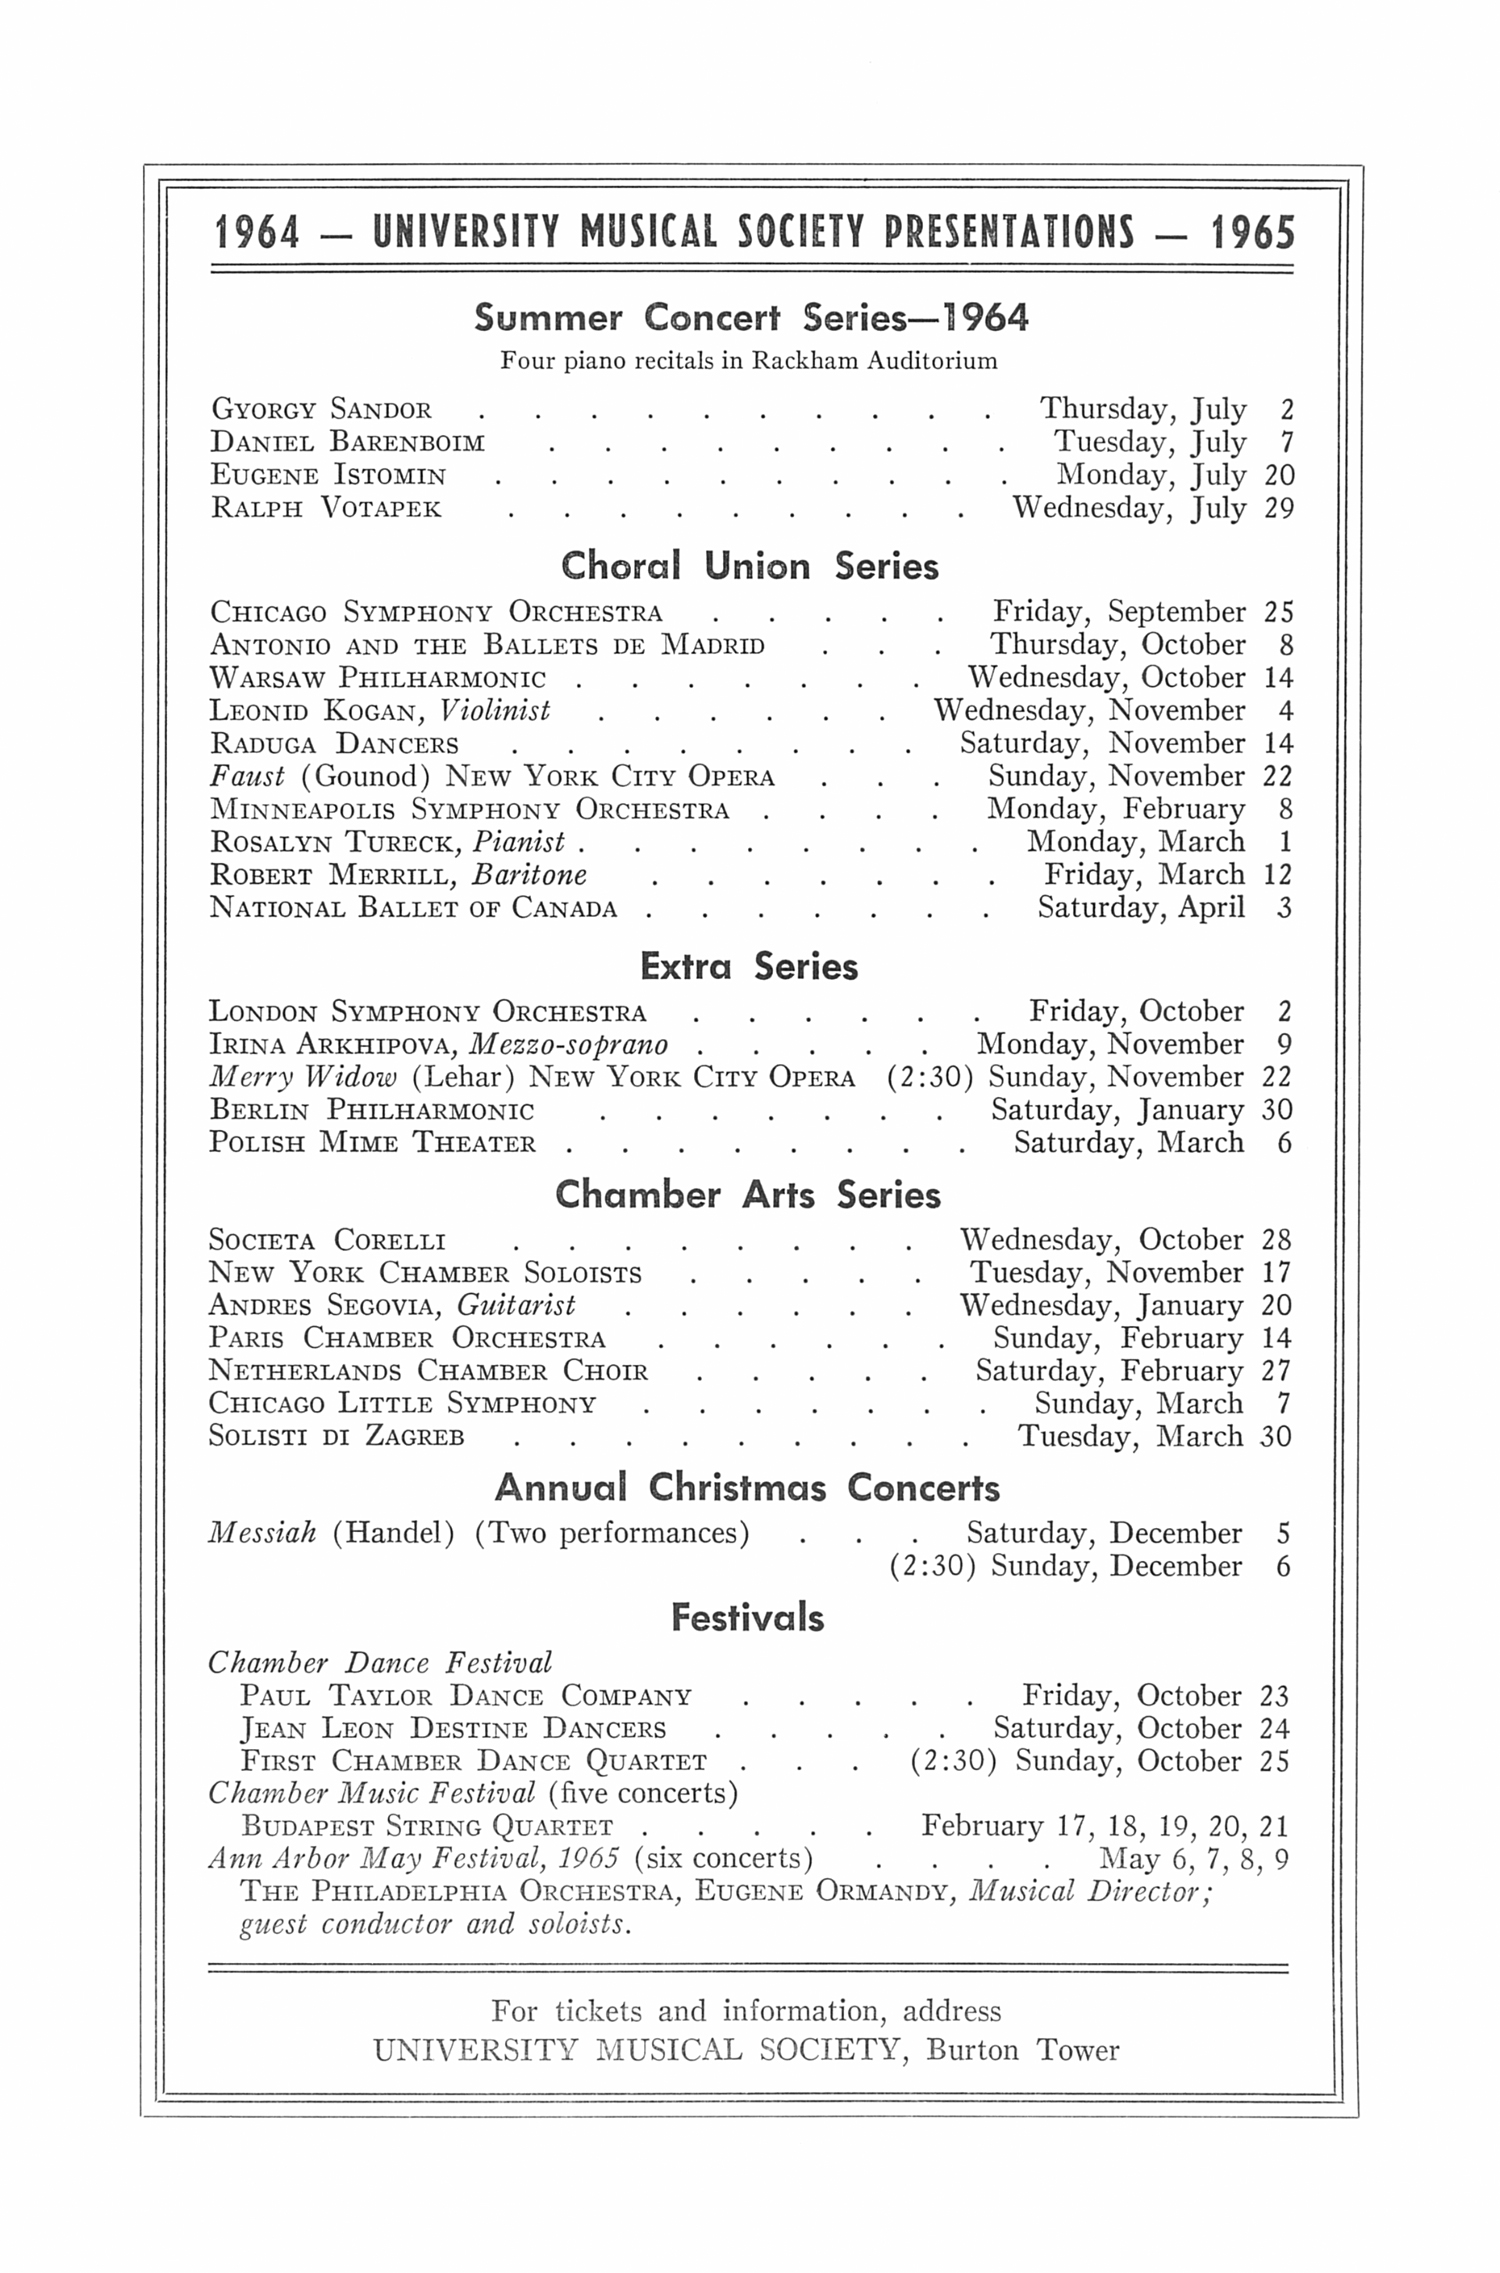 UMS Concert Program, May 2, 1964: Seventy-first Annual May Festival -- The Philadelphia Orchestra image